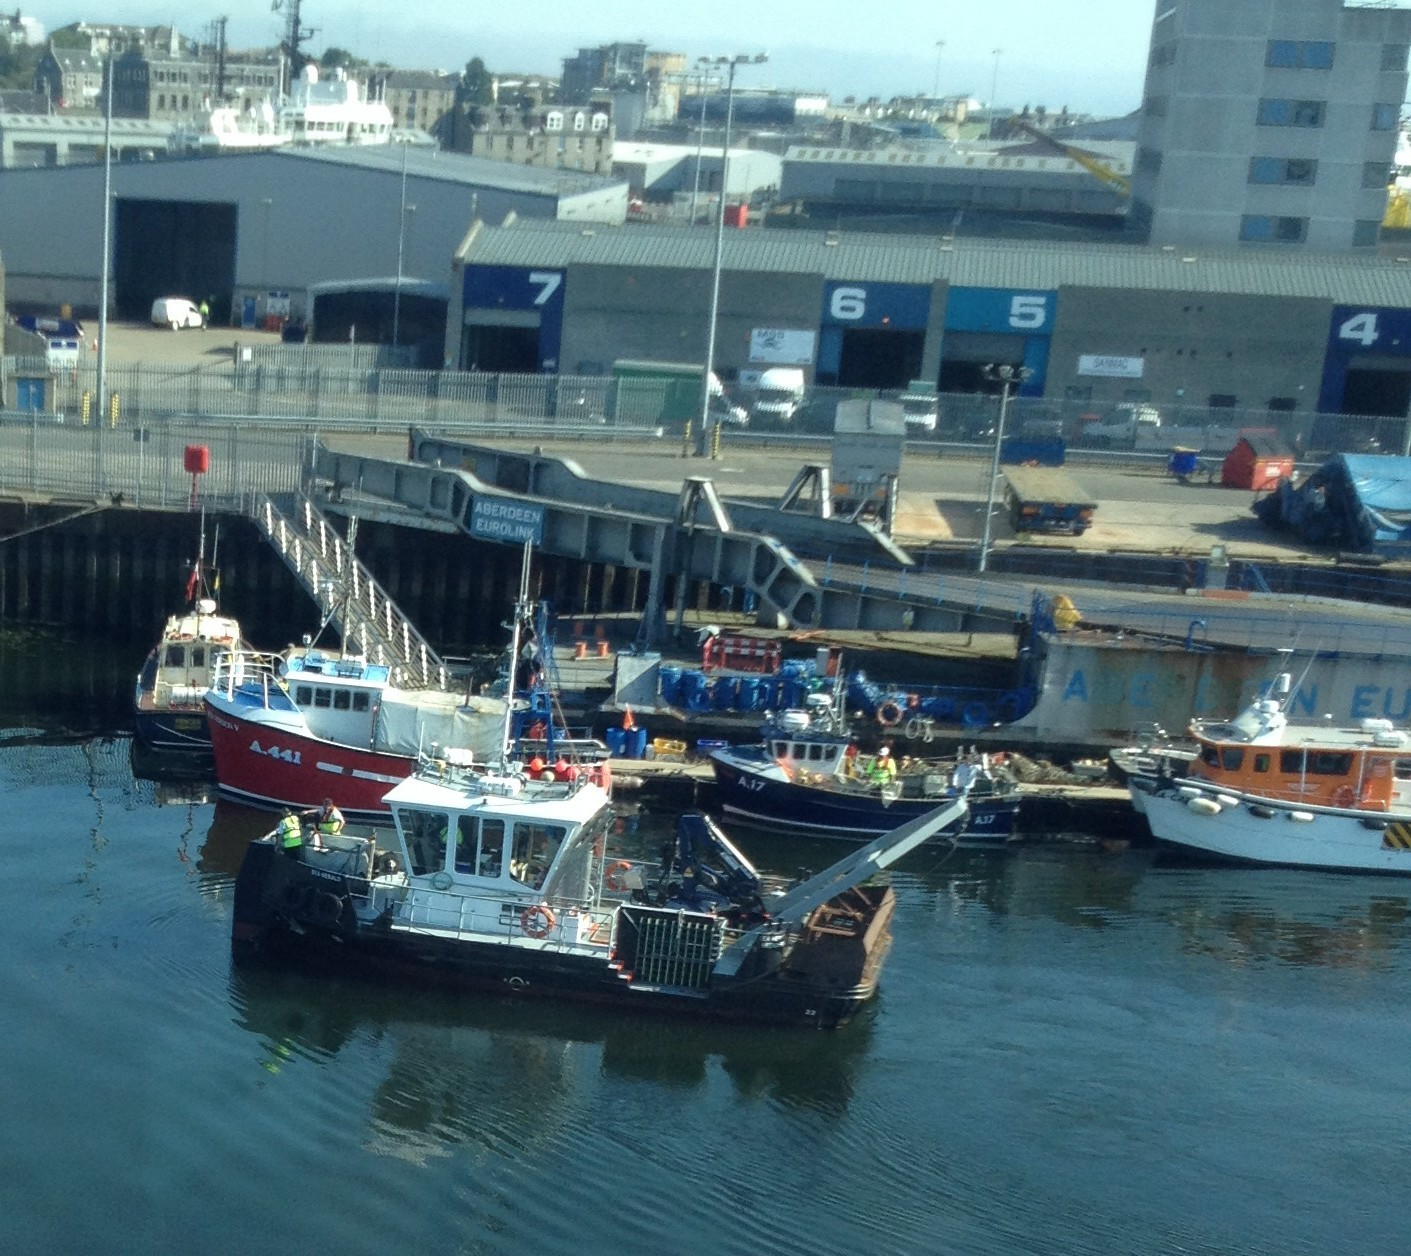 Stuart Wallace's body was recovered from Aberdeen Harbour. Picture submitted by Martin Pedersen